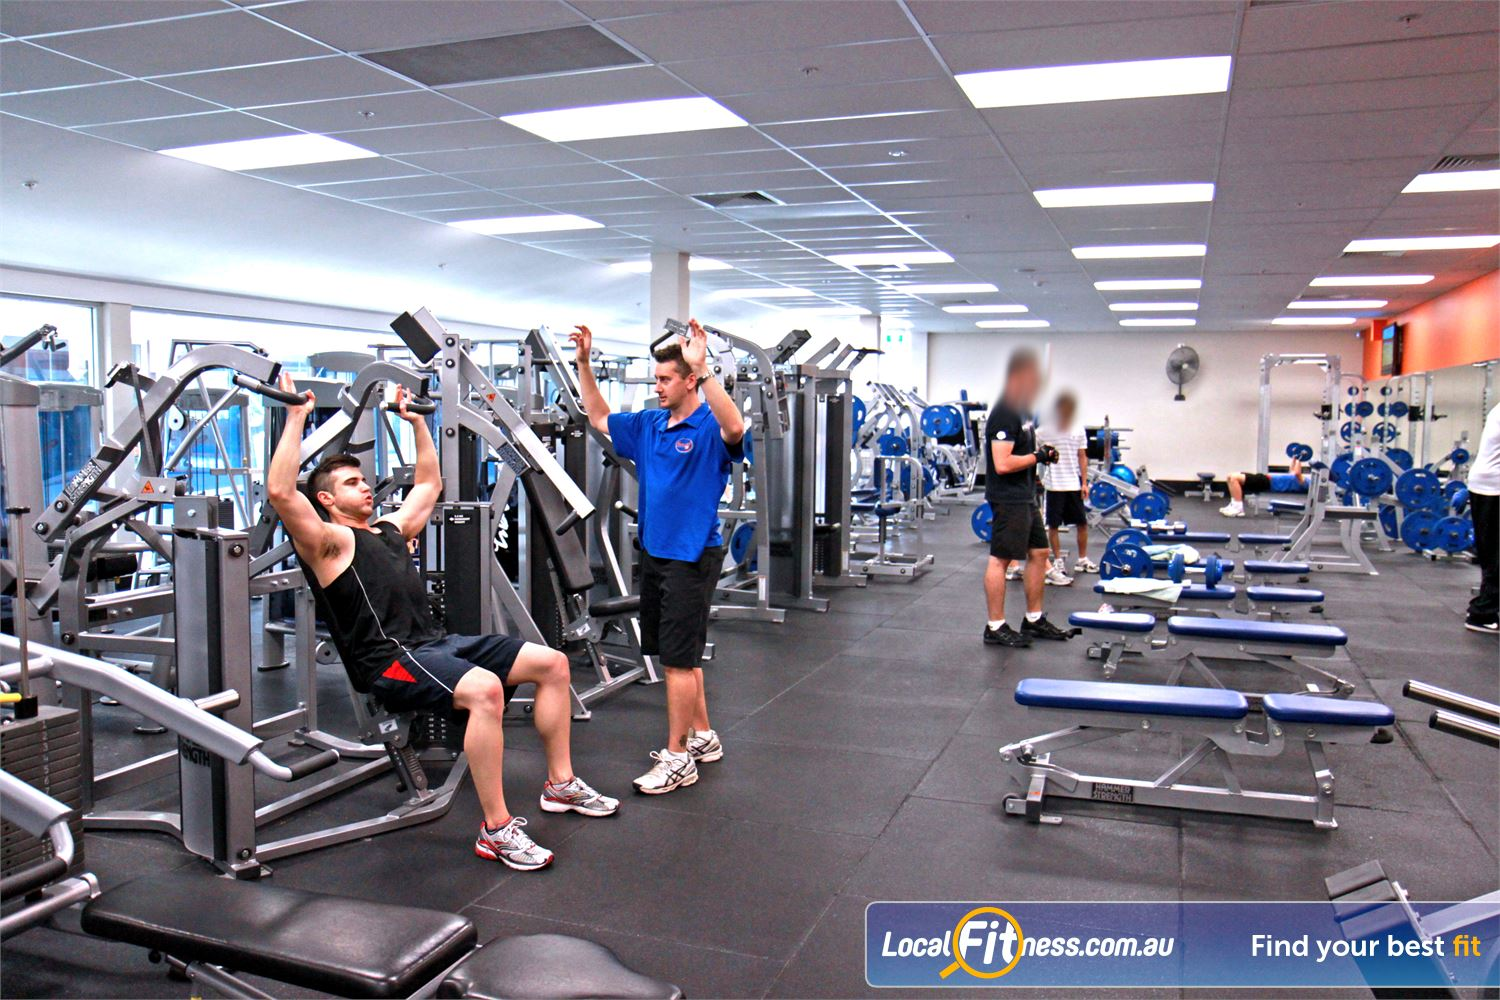 Goodlife Health Clubs Near Medindie Our North Adelaide gym instructors Can tailor a strength program for you.